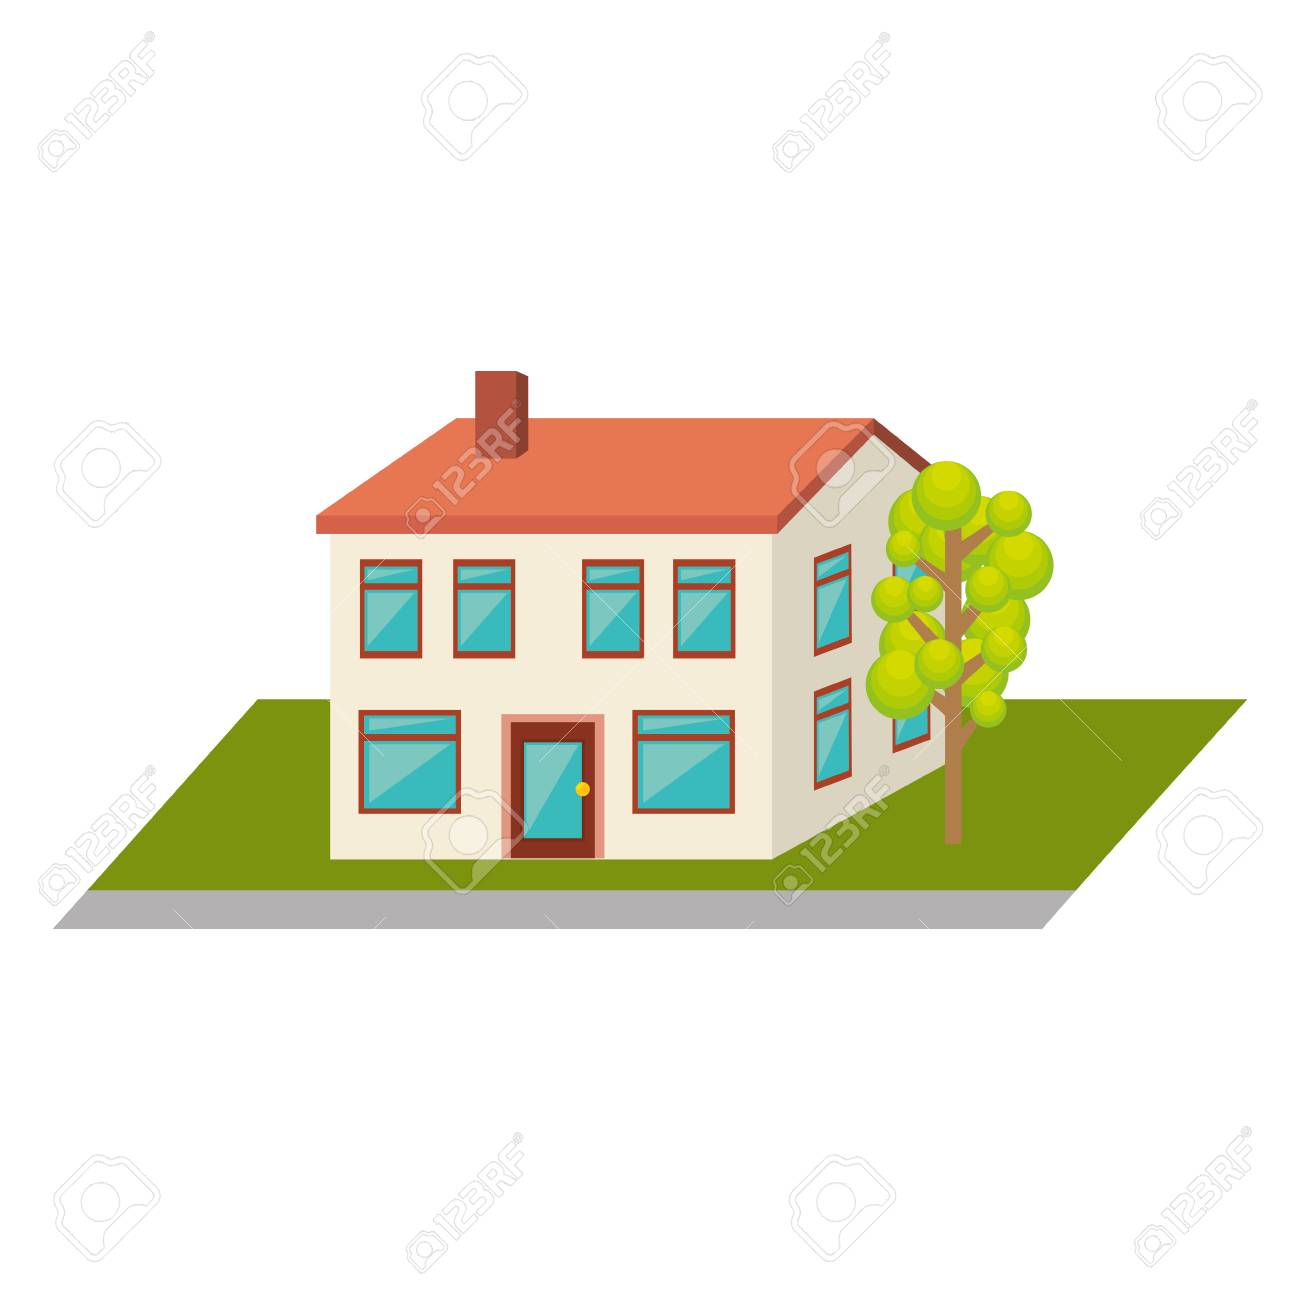 Exterior Cute House Icon Vector Illustration Design Royalty Free Cliparts Vectors And Stock Illustration Image 69337836